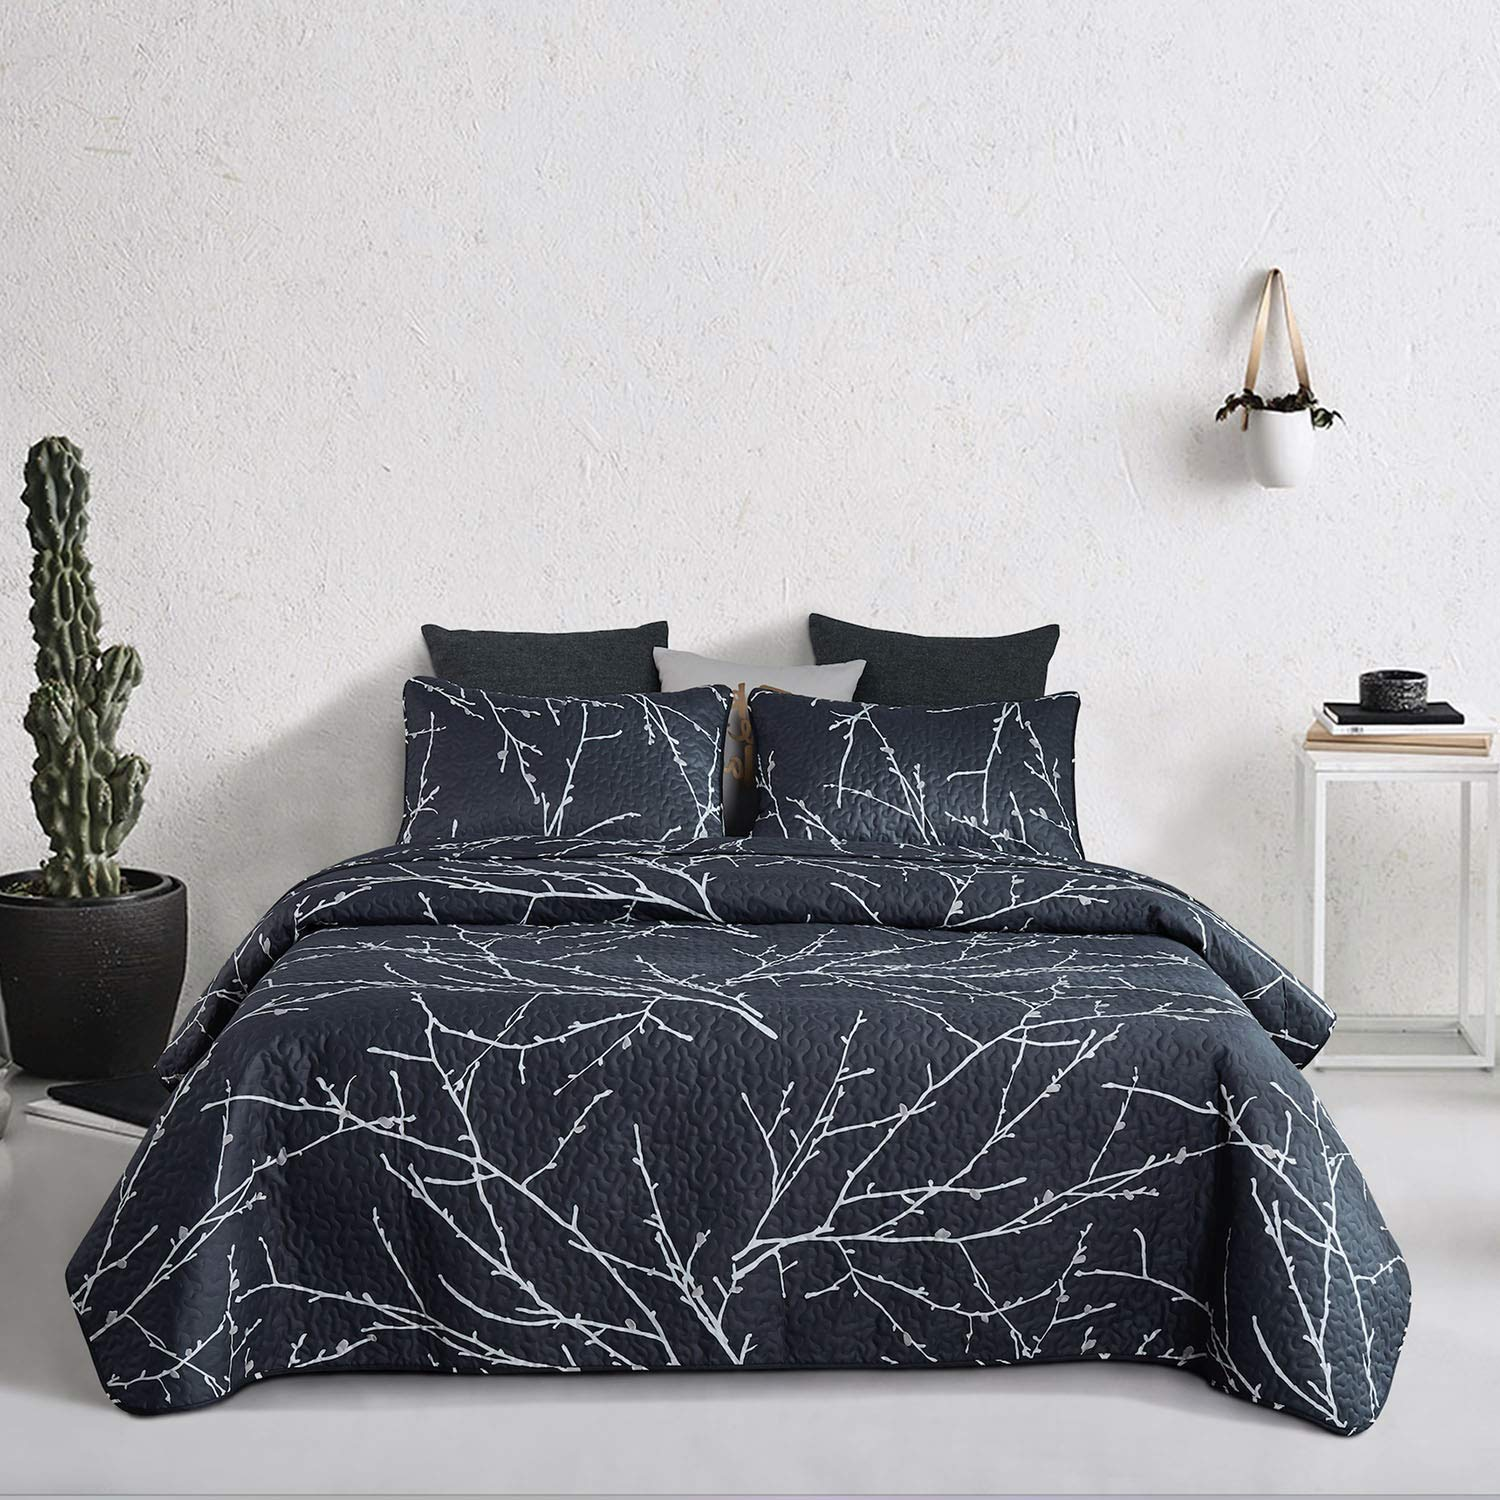 Wake In Cloud - Branches Quilt Set, Dark Gray Grey Charcoal with Tree Pattern Printed, Soft Microfiber Bedspread Coverlet Bedding